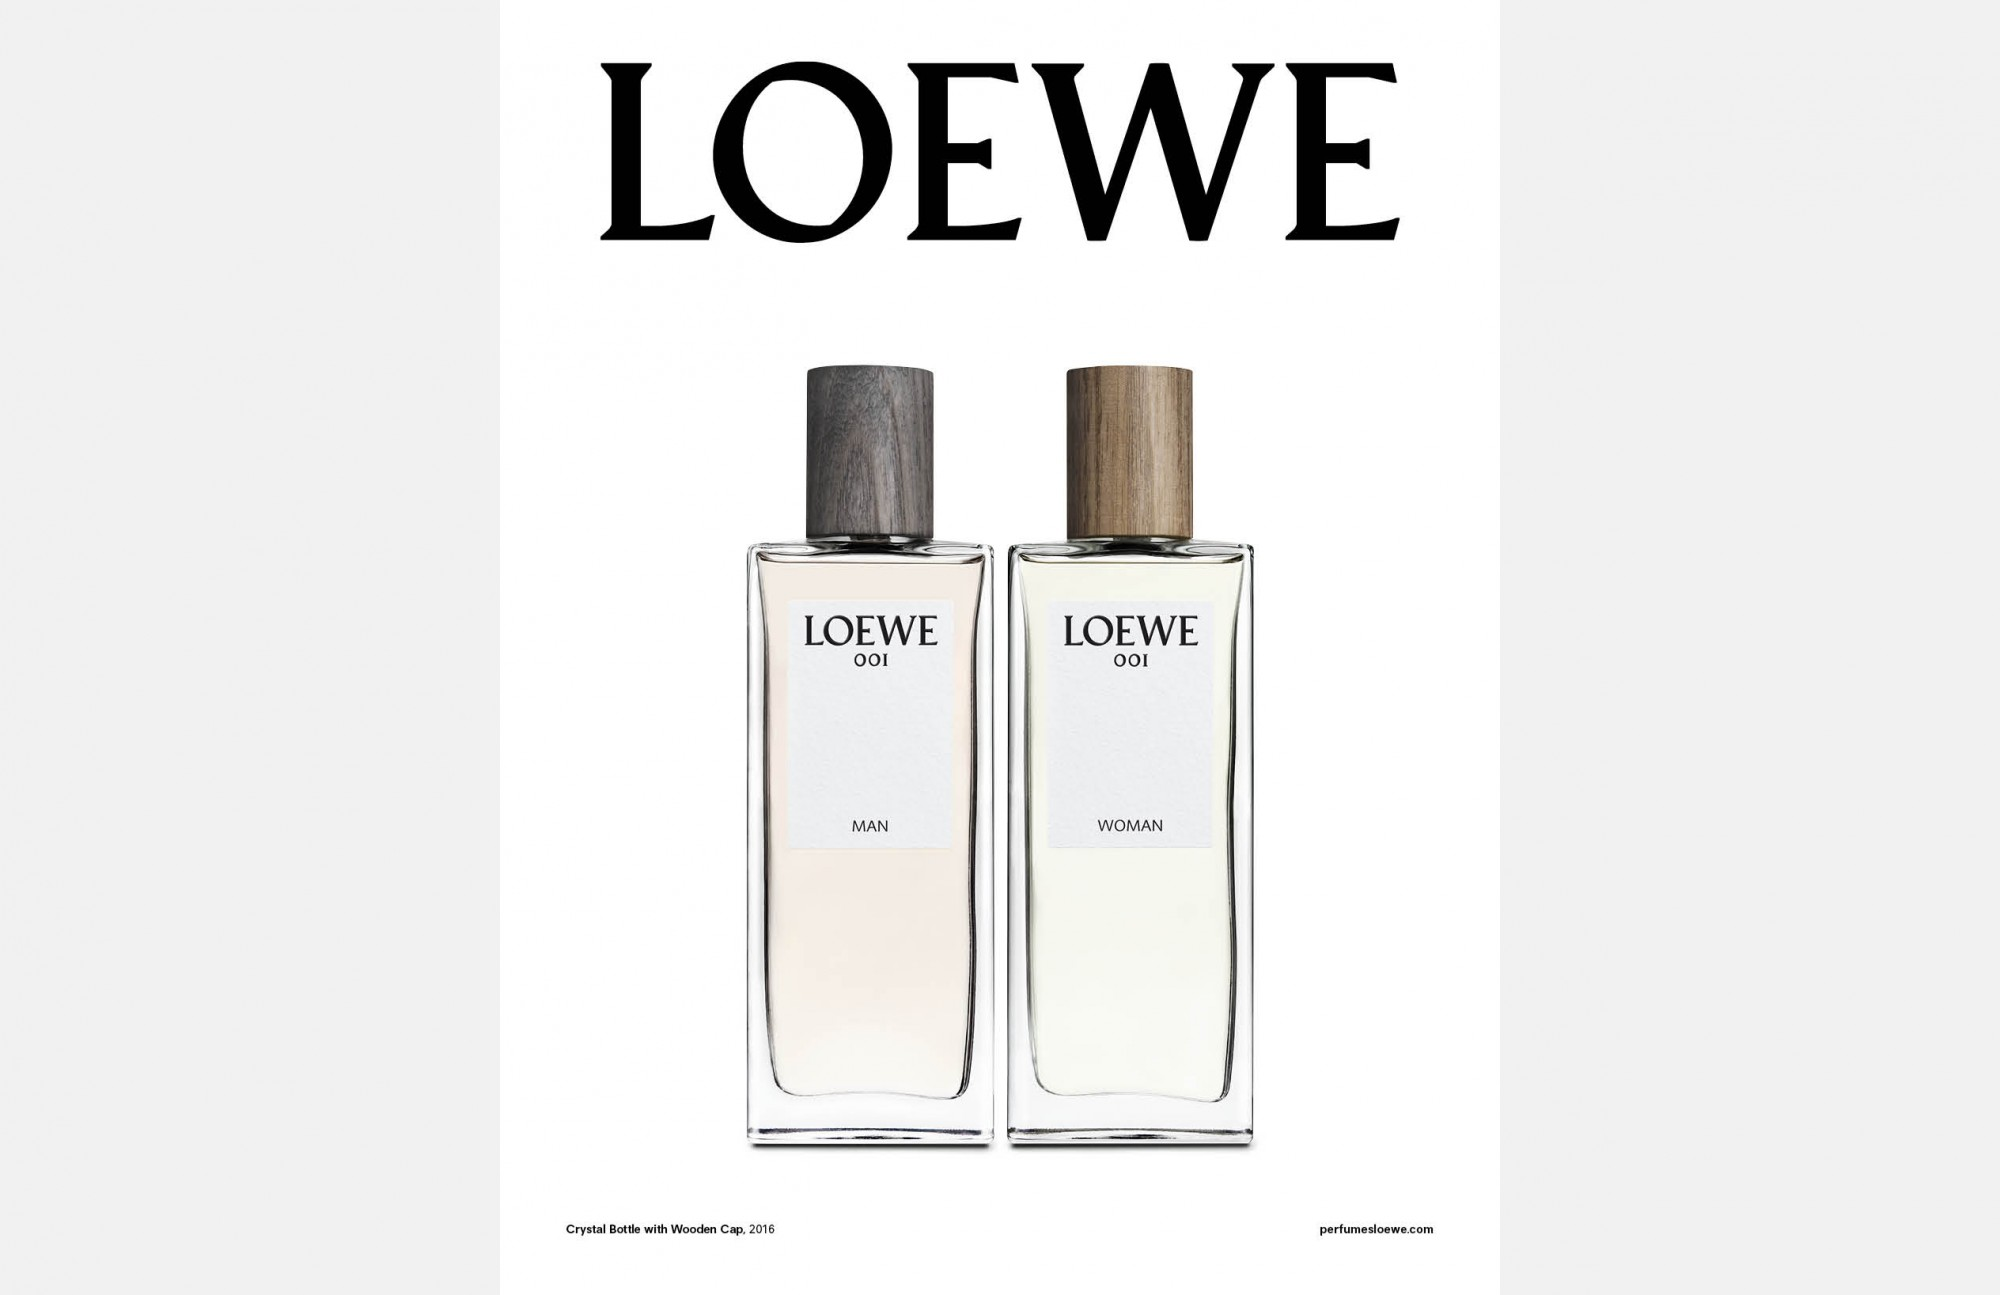 Loewe-001-fragrance-ad-campaign-fall-2016-the-impression-02